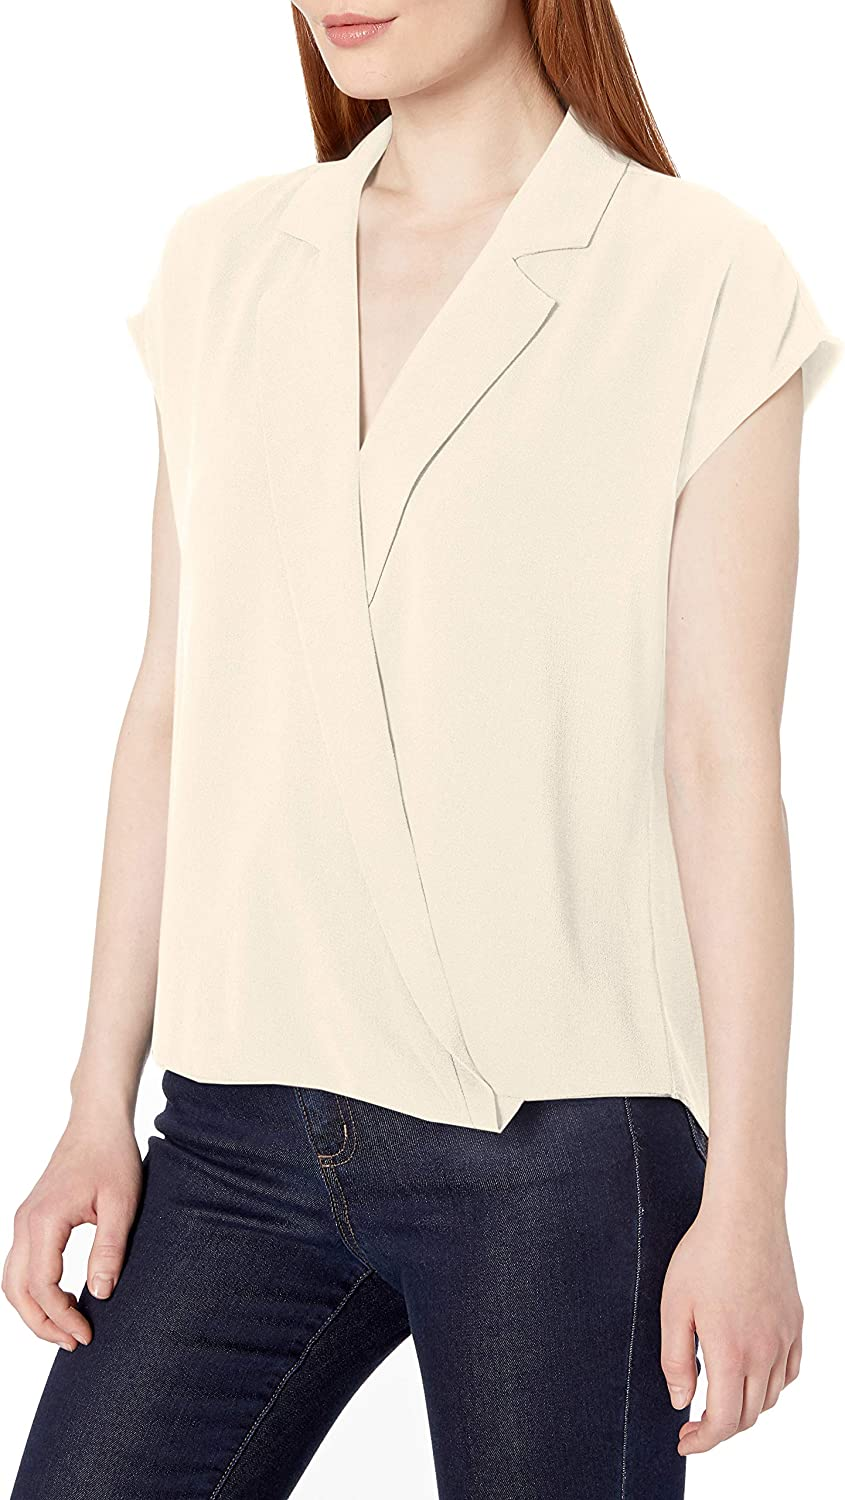 Vince Camuto Women's Extend Blouse Notched Collar Los Angeles Mall Shoulder service